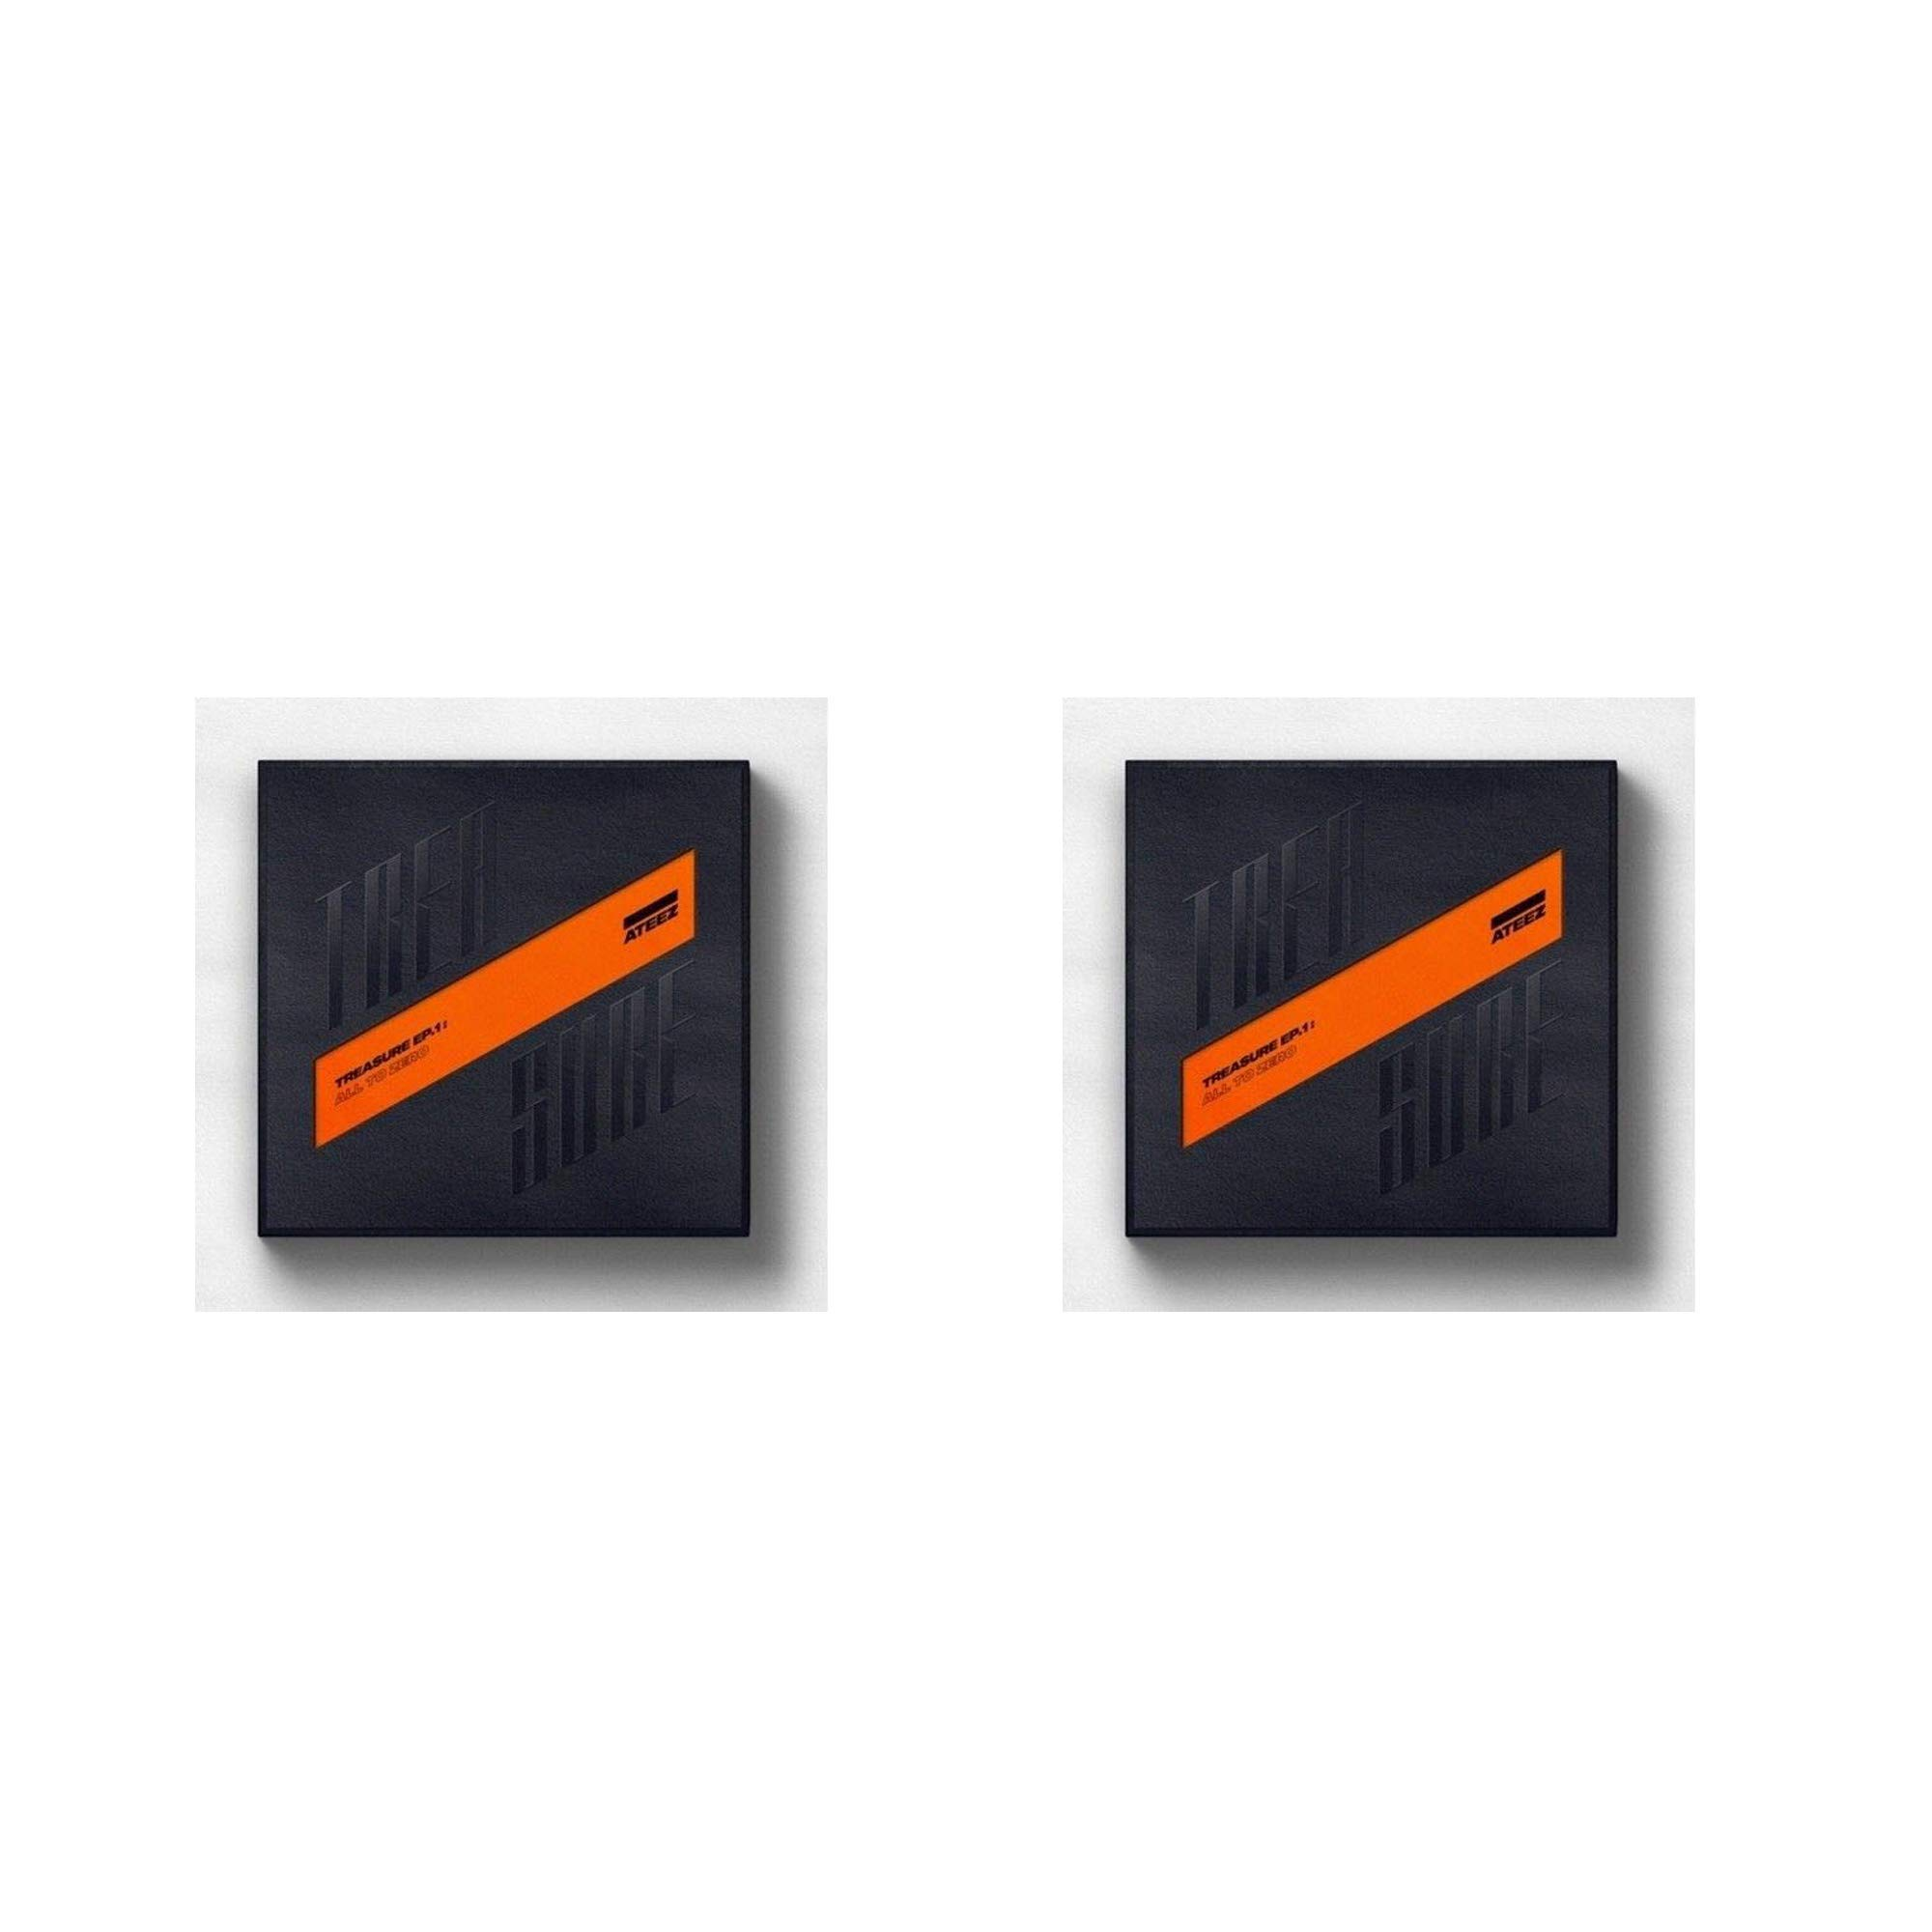 ATEEZ - [Treasure EP.1:All to Zero]1st CD+1p Poster/On+100p Booklet+1p Sticker+8p Post+3p PhotoCard+Tracking (Original Version) by ATEEZ